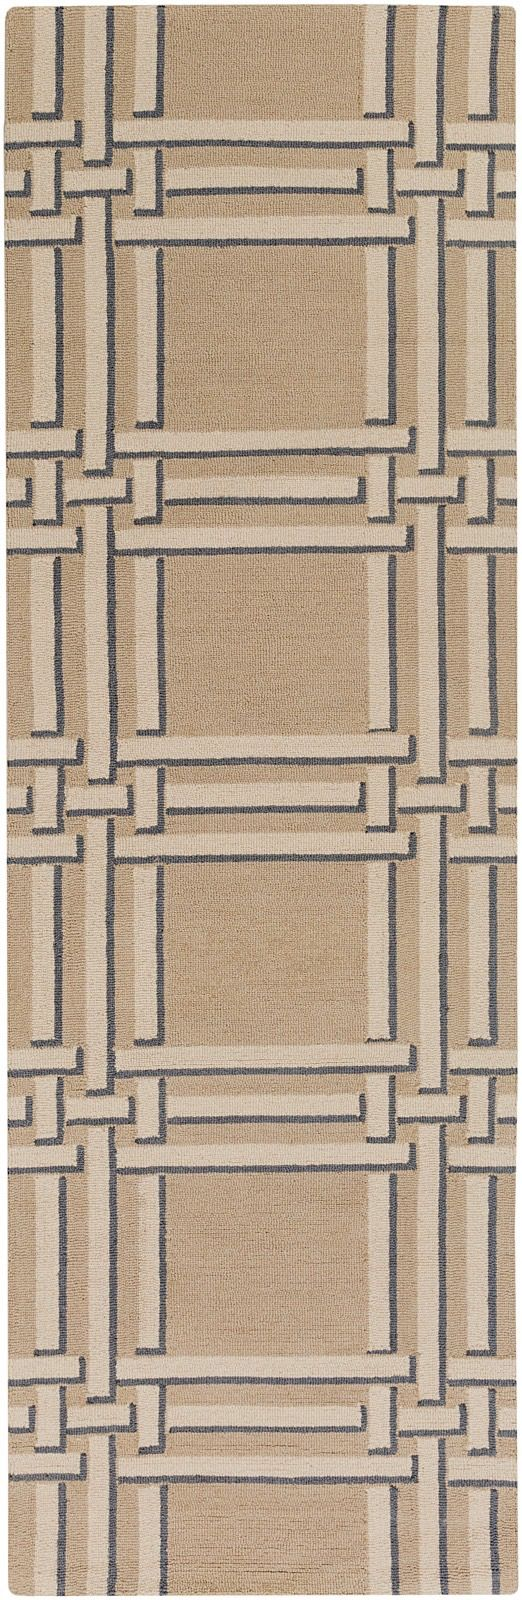 surya lockhart contemporary area rug collection